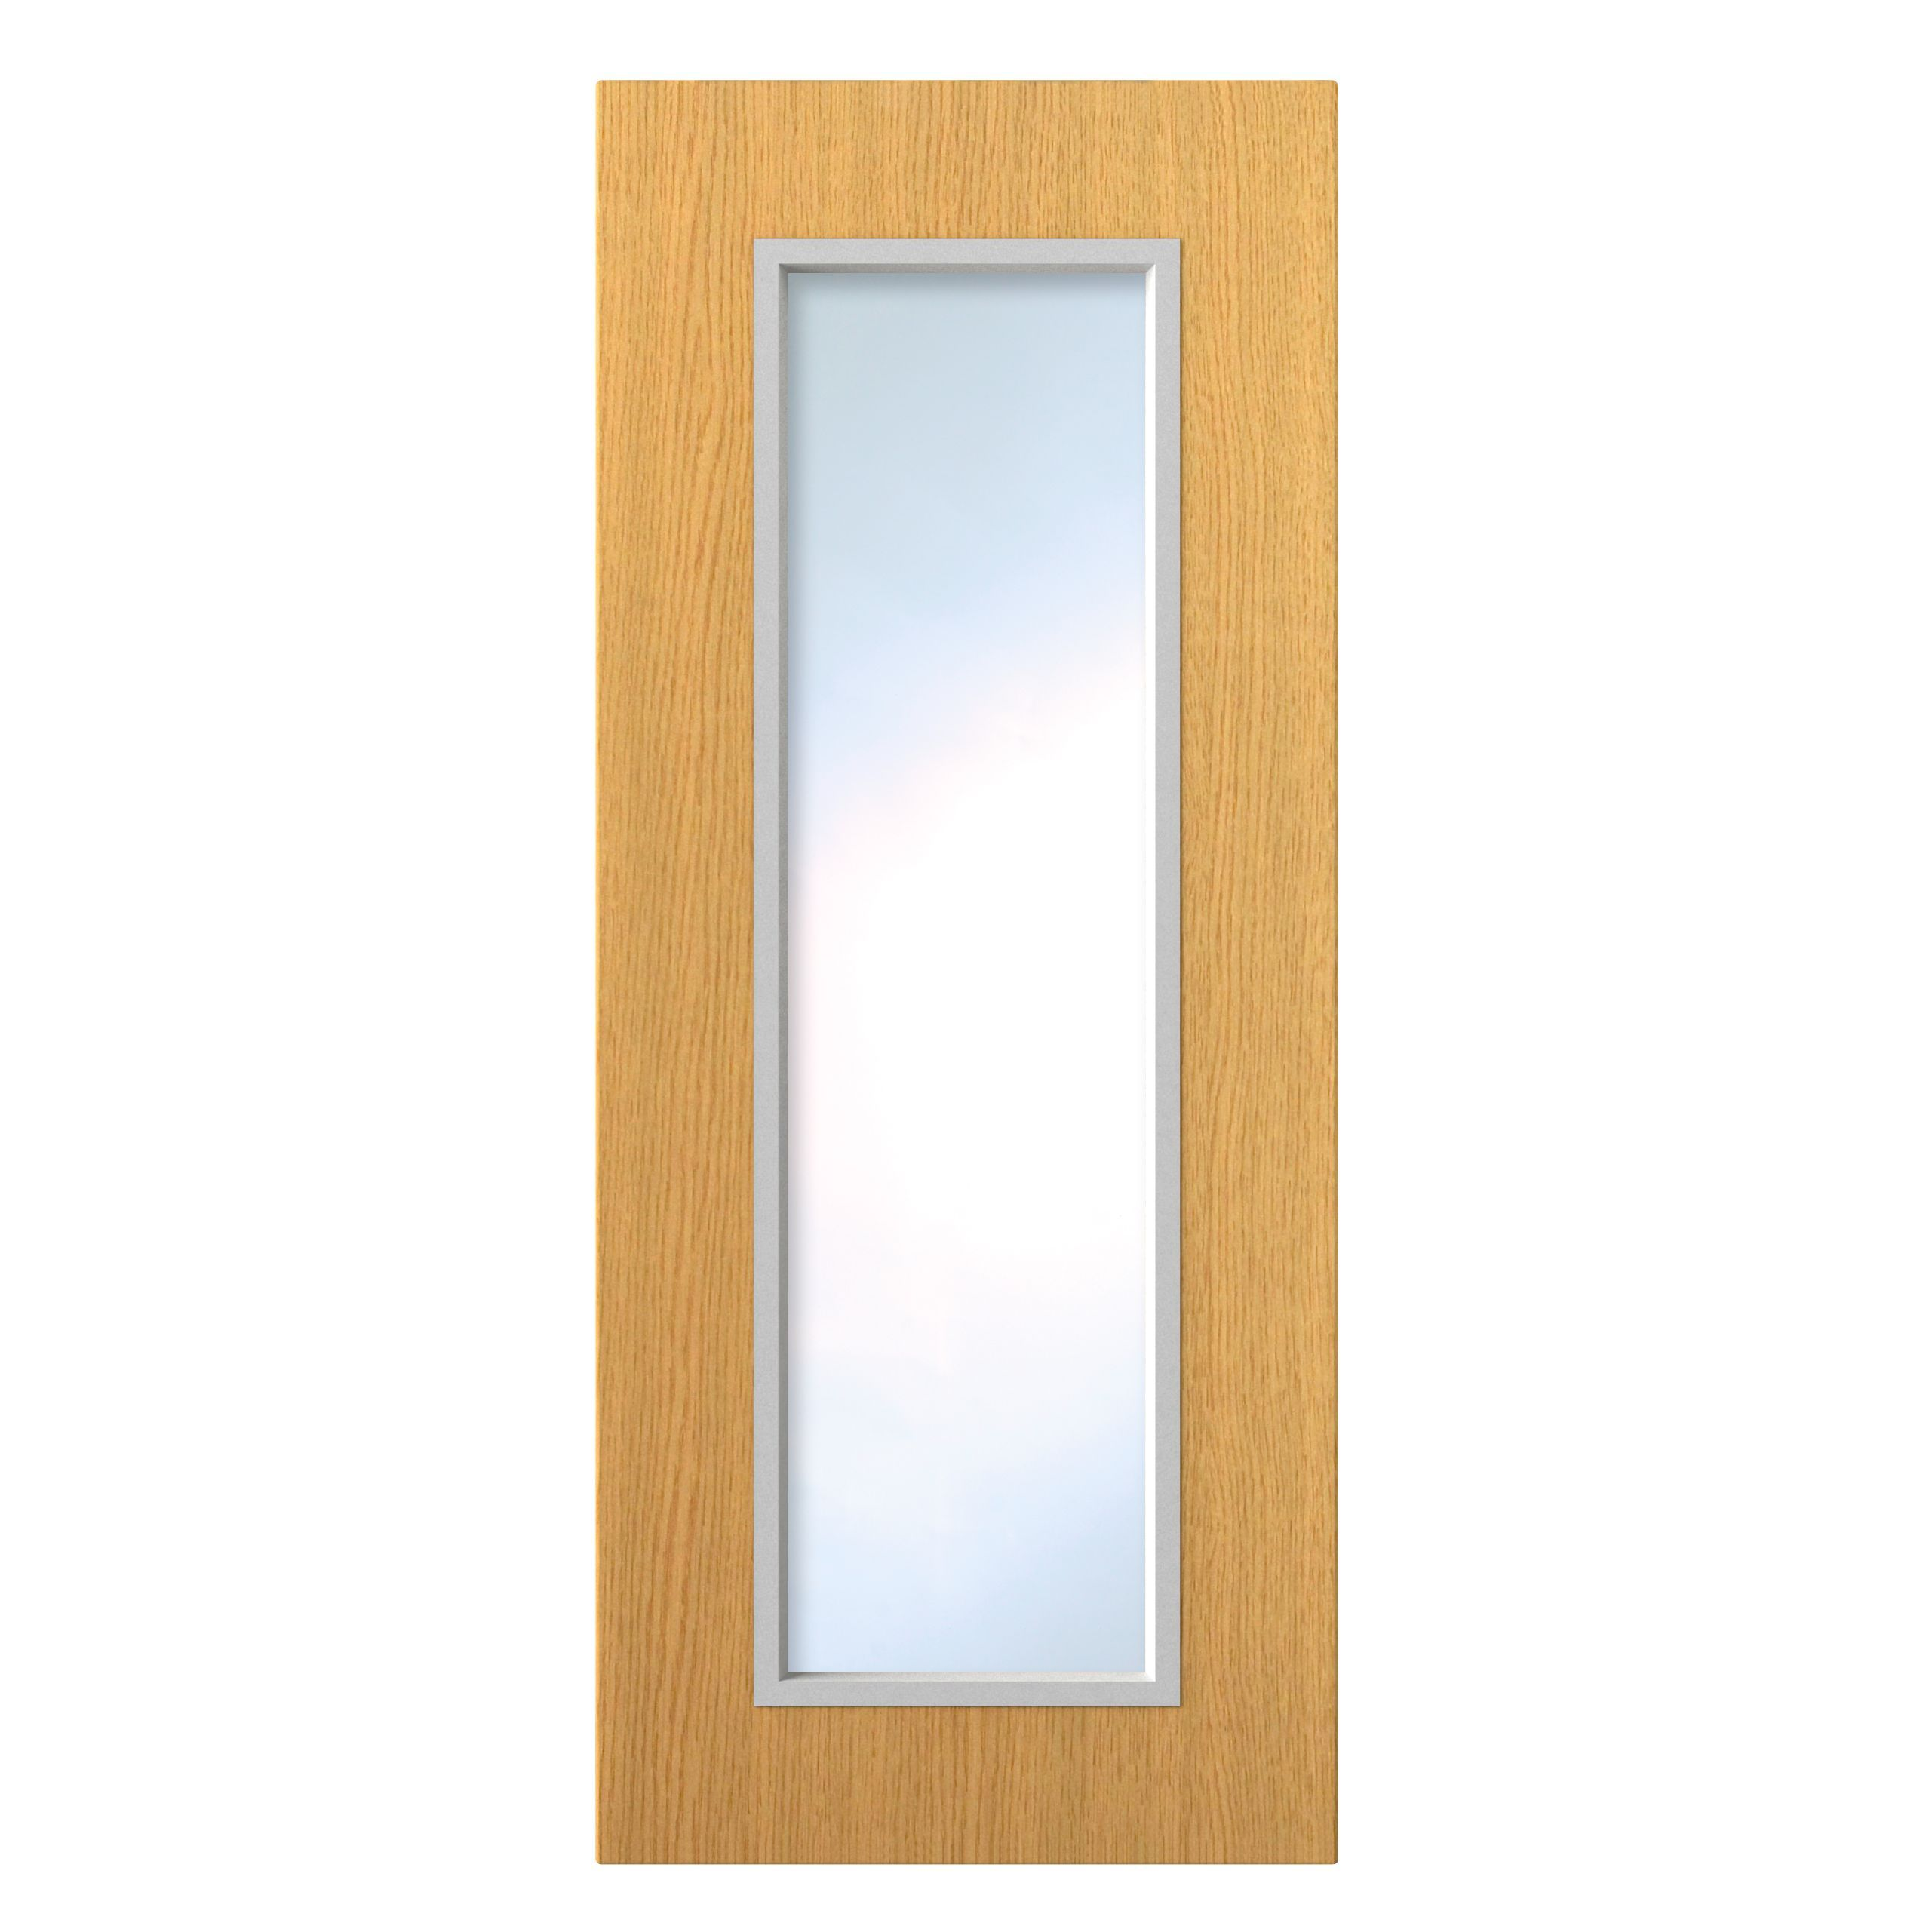 How To Trade >> IT Kitchens Oak Style Slab Glazed Door (W)300mm | Departments | TradePoint